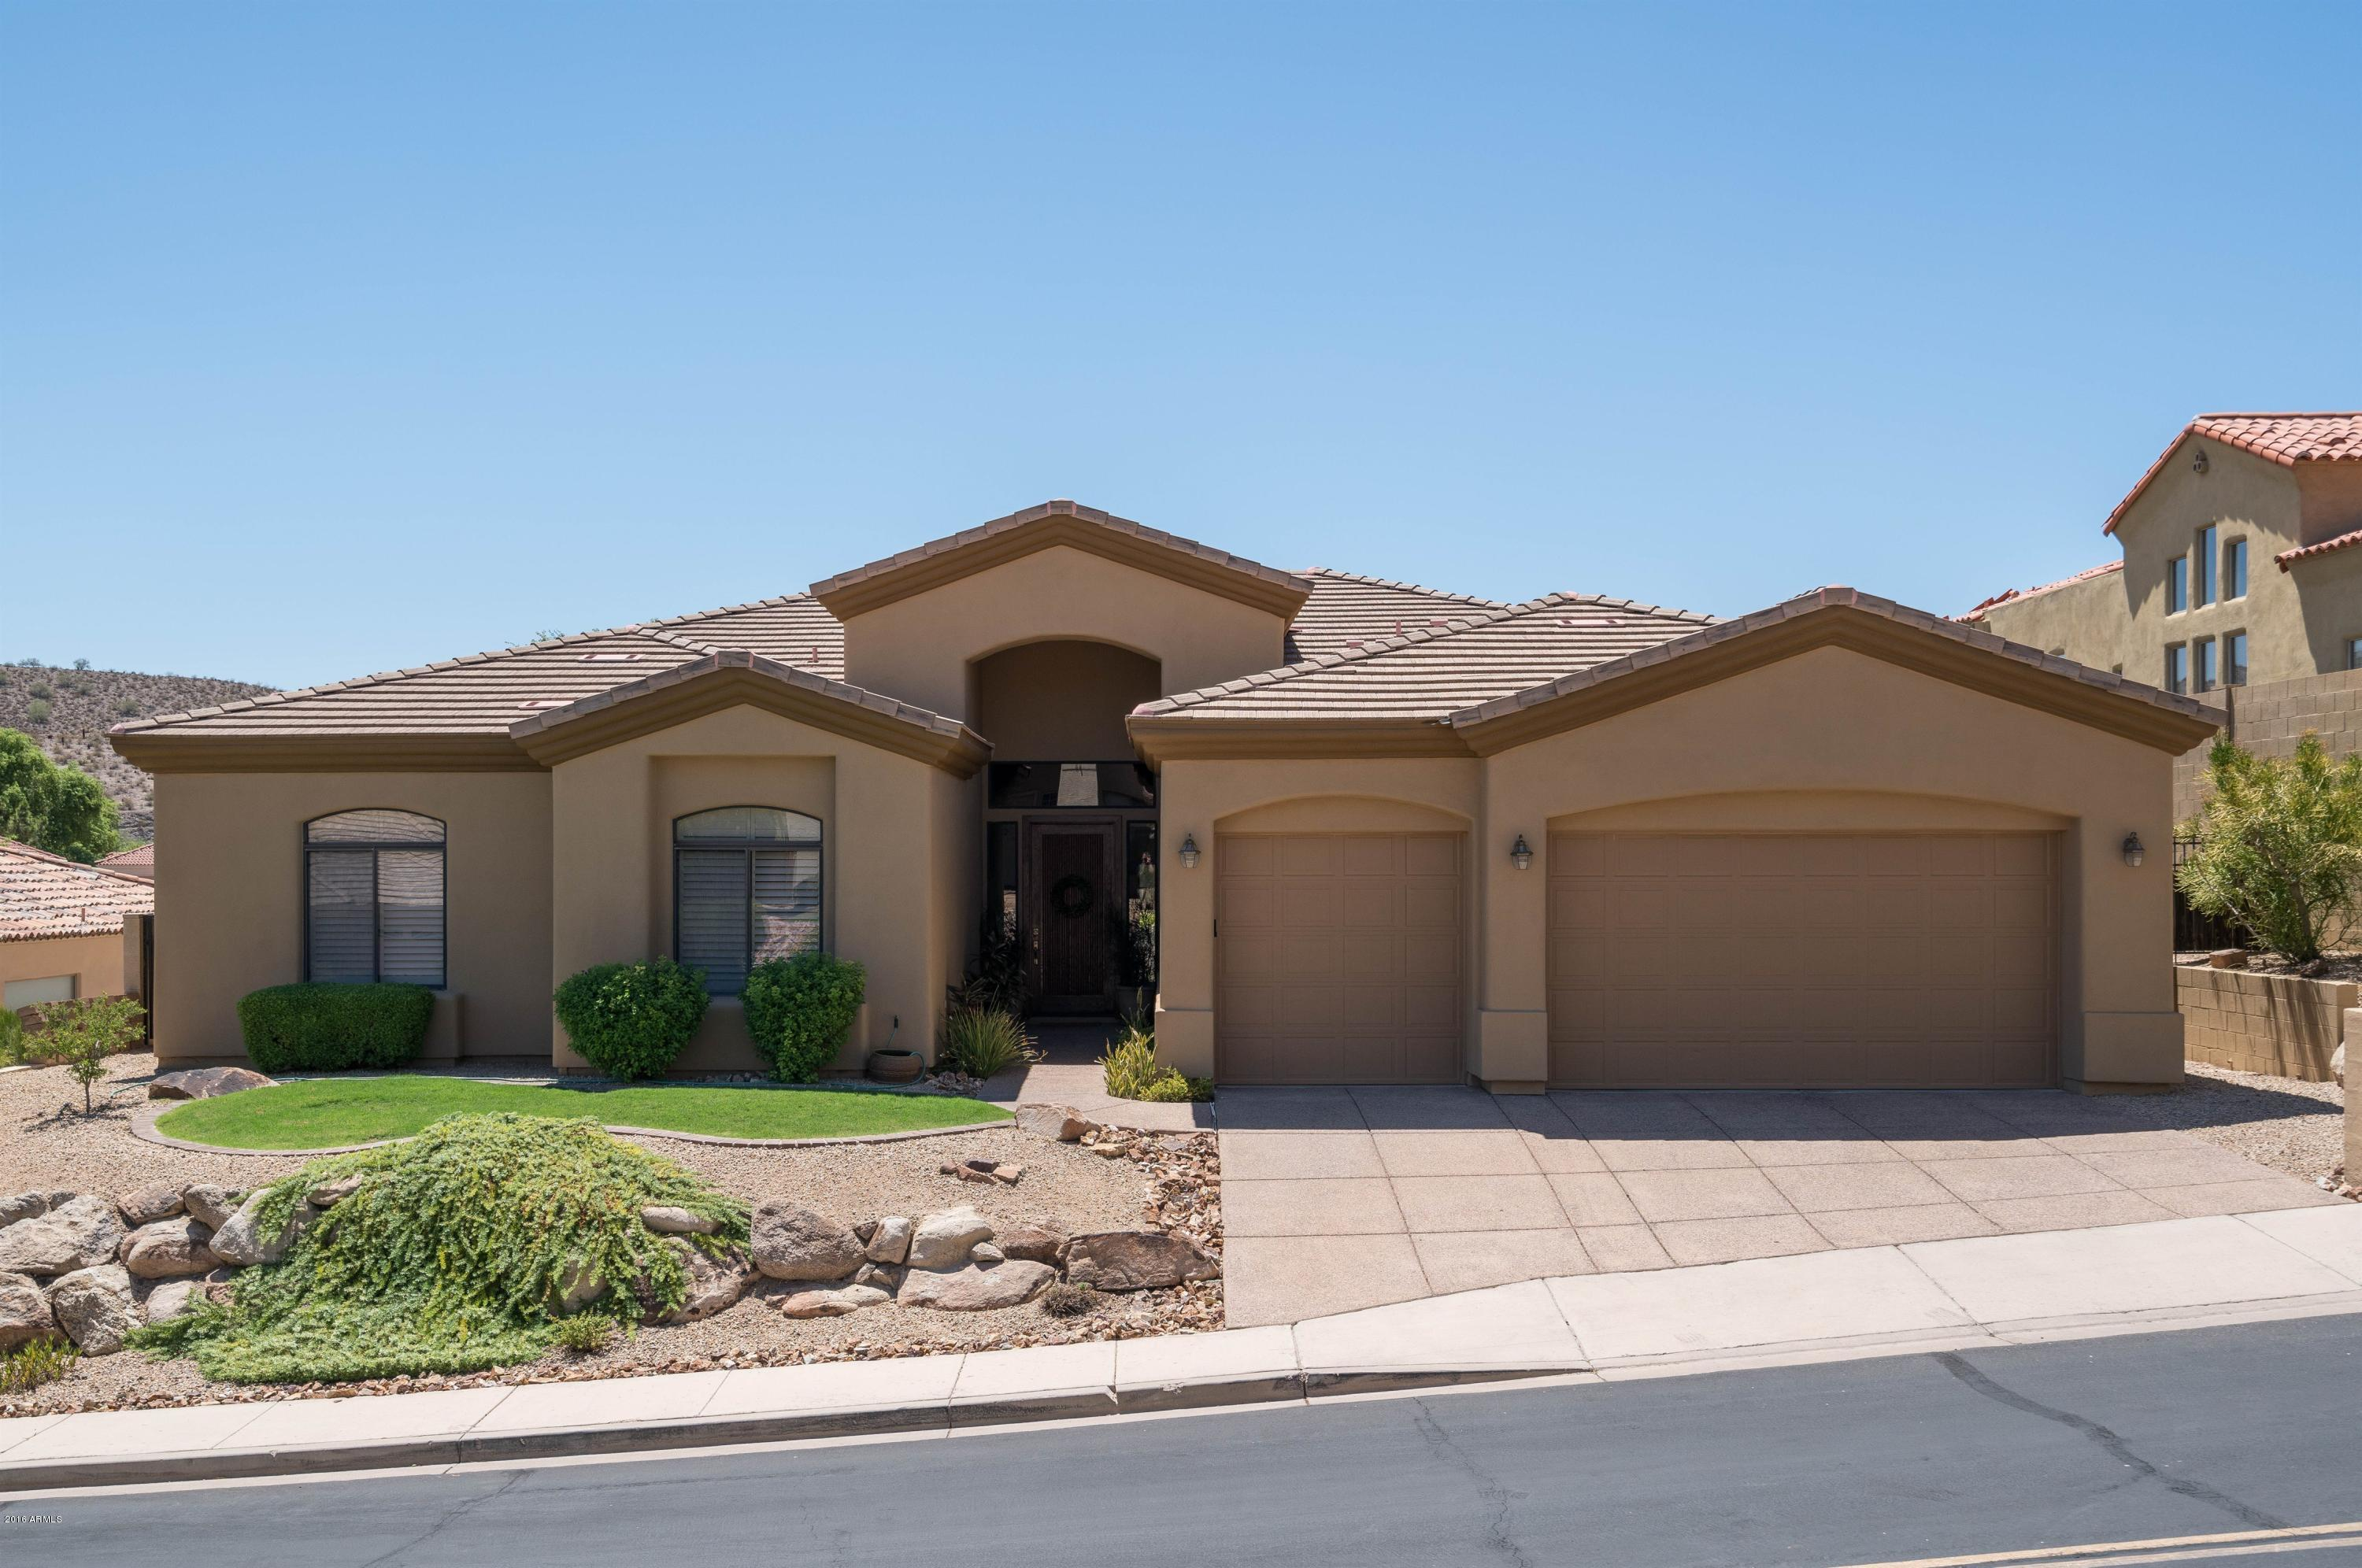 North Central Phoenix Real Estate Agents | The Caniglia ... on keller homes, zeman homes, johnson homes, alexander homes, schultz homes, schneider homes,